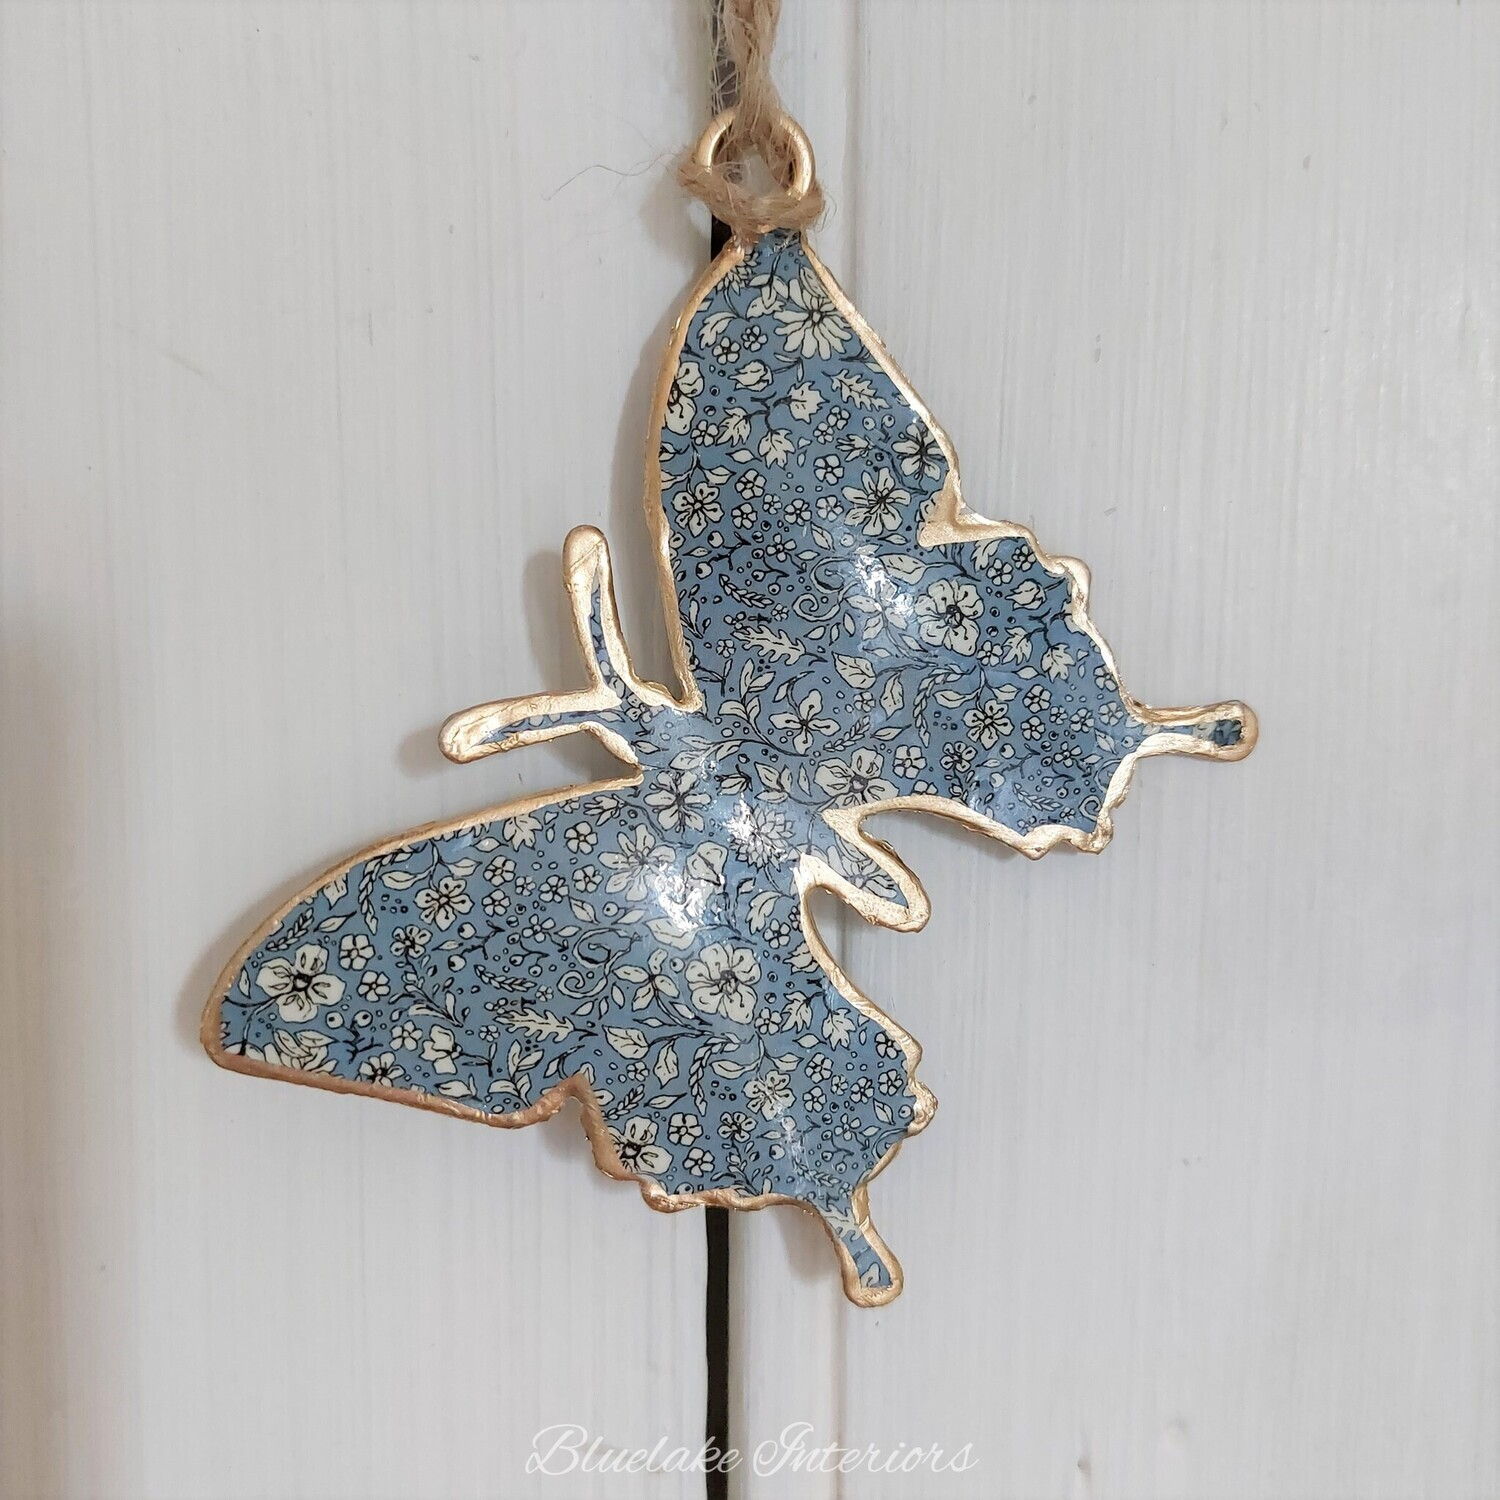 Small Blue Ditsy Floral Design Metal Hanging Butterfly